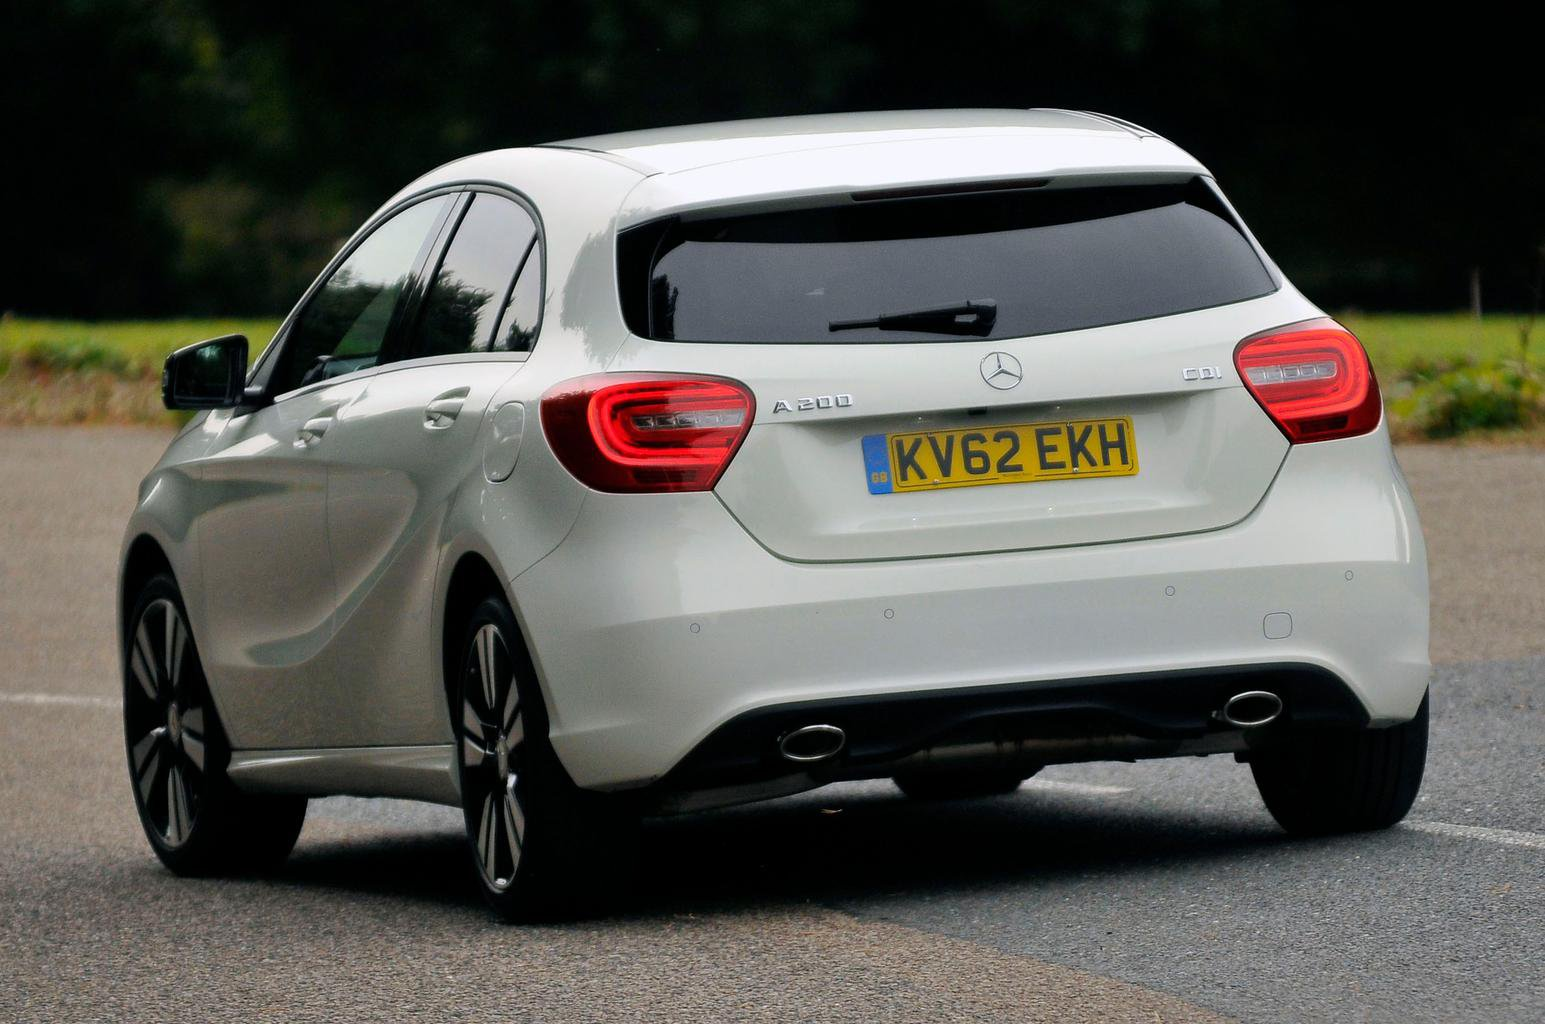 Used test – posh hatches: Audi A3 vs Mercedes-Benz A-Class